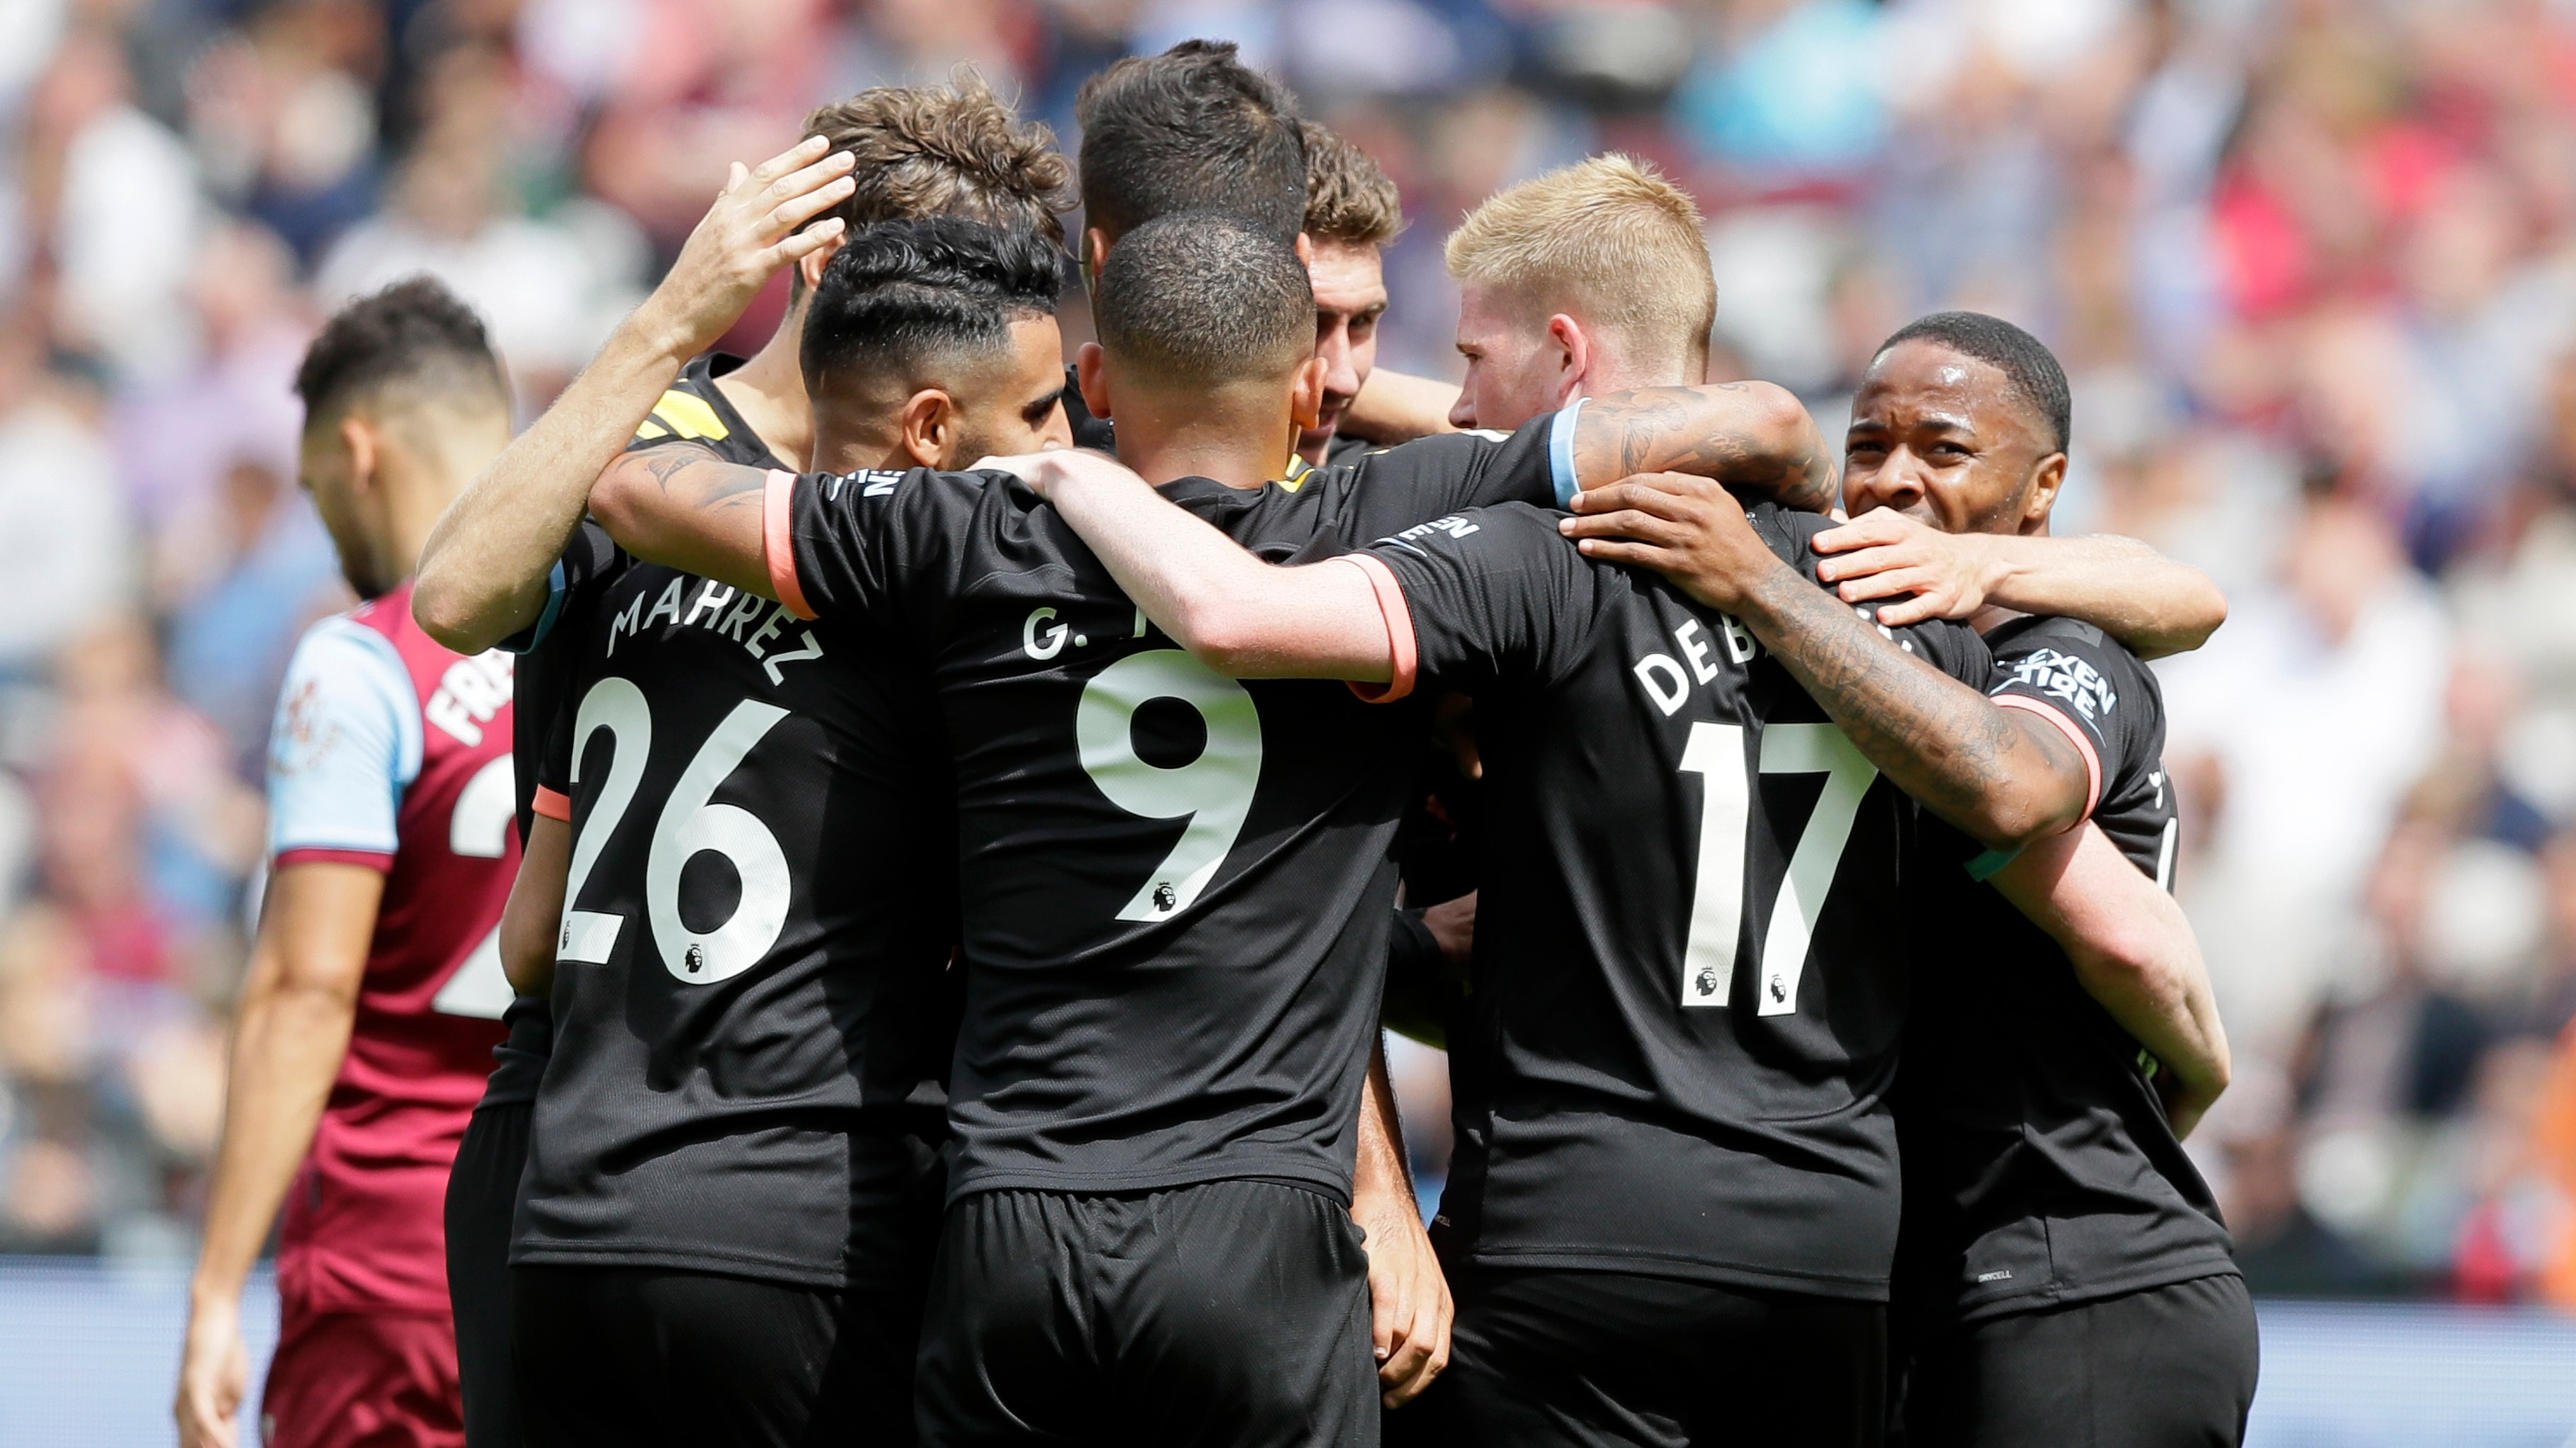 Manchester city vs tottenham betting preview indian online betting games to play